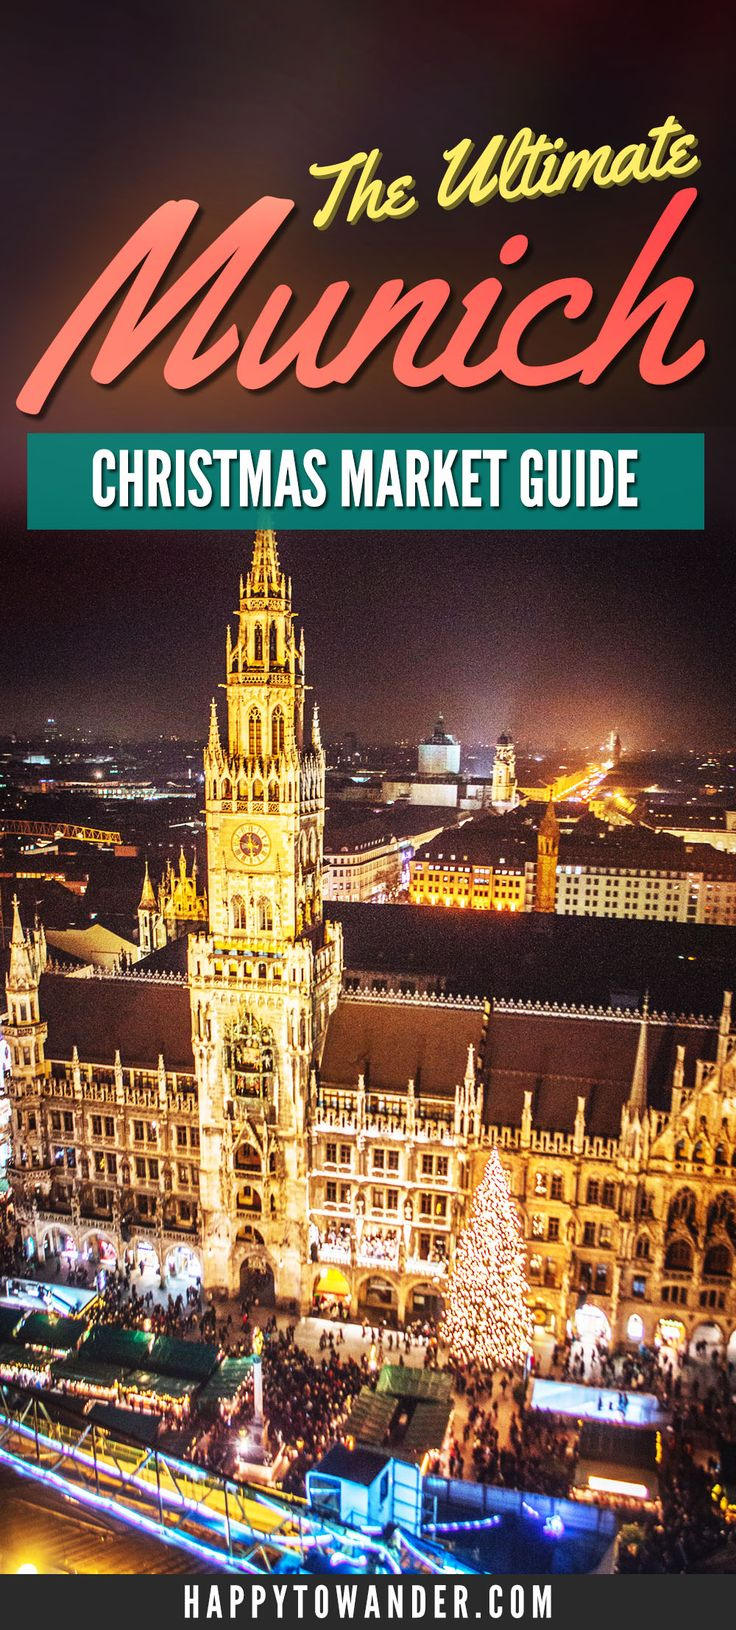 THE best and most thorough guide out there for Munich Christmas Markets! Don't miss this guide if you're planning on visiting Munich, Germany for Christmas Markets. Includes the best markets to visit, what to do, what to eat and more.